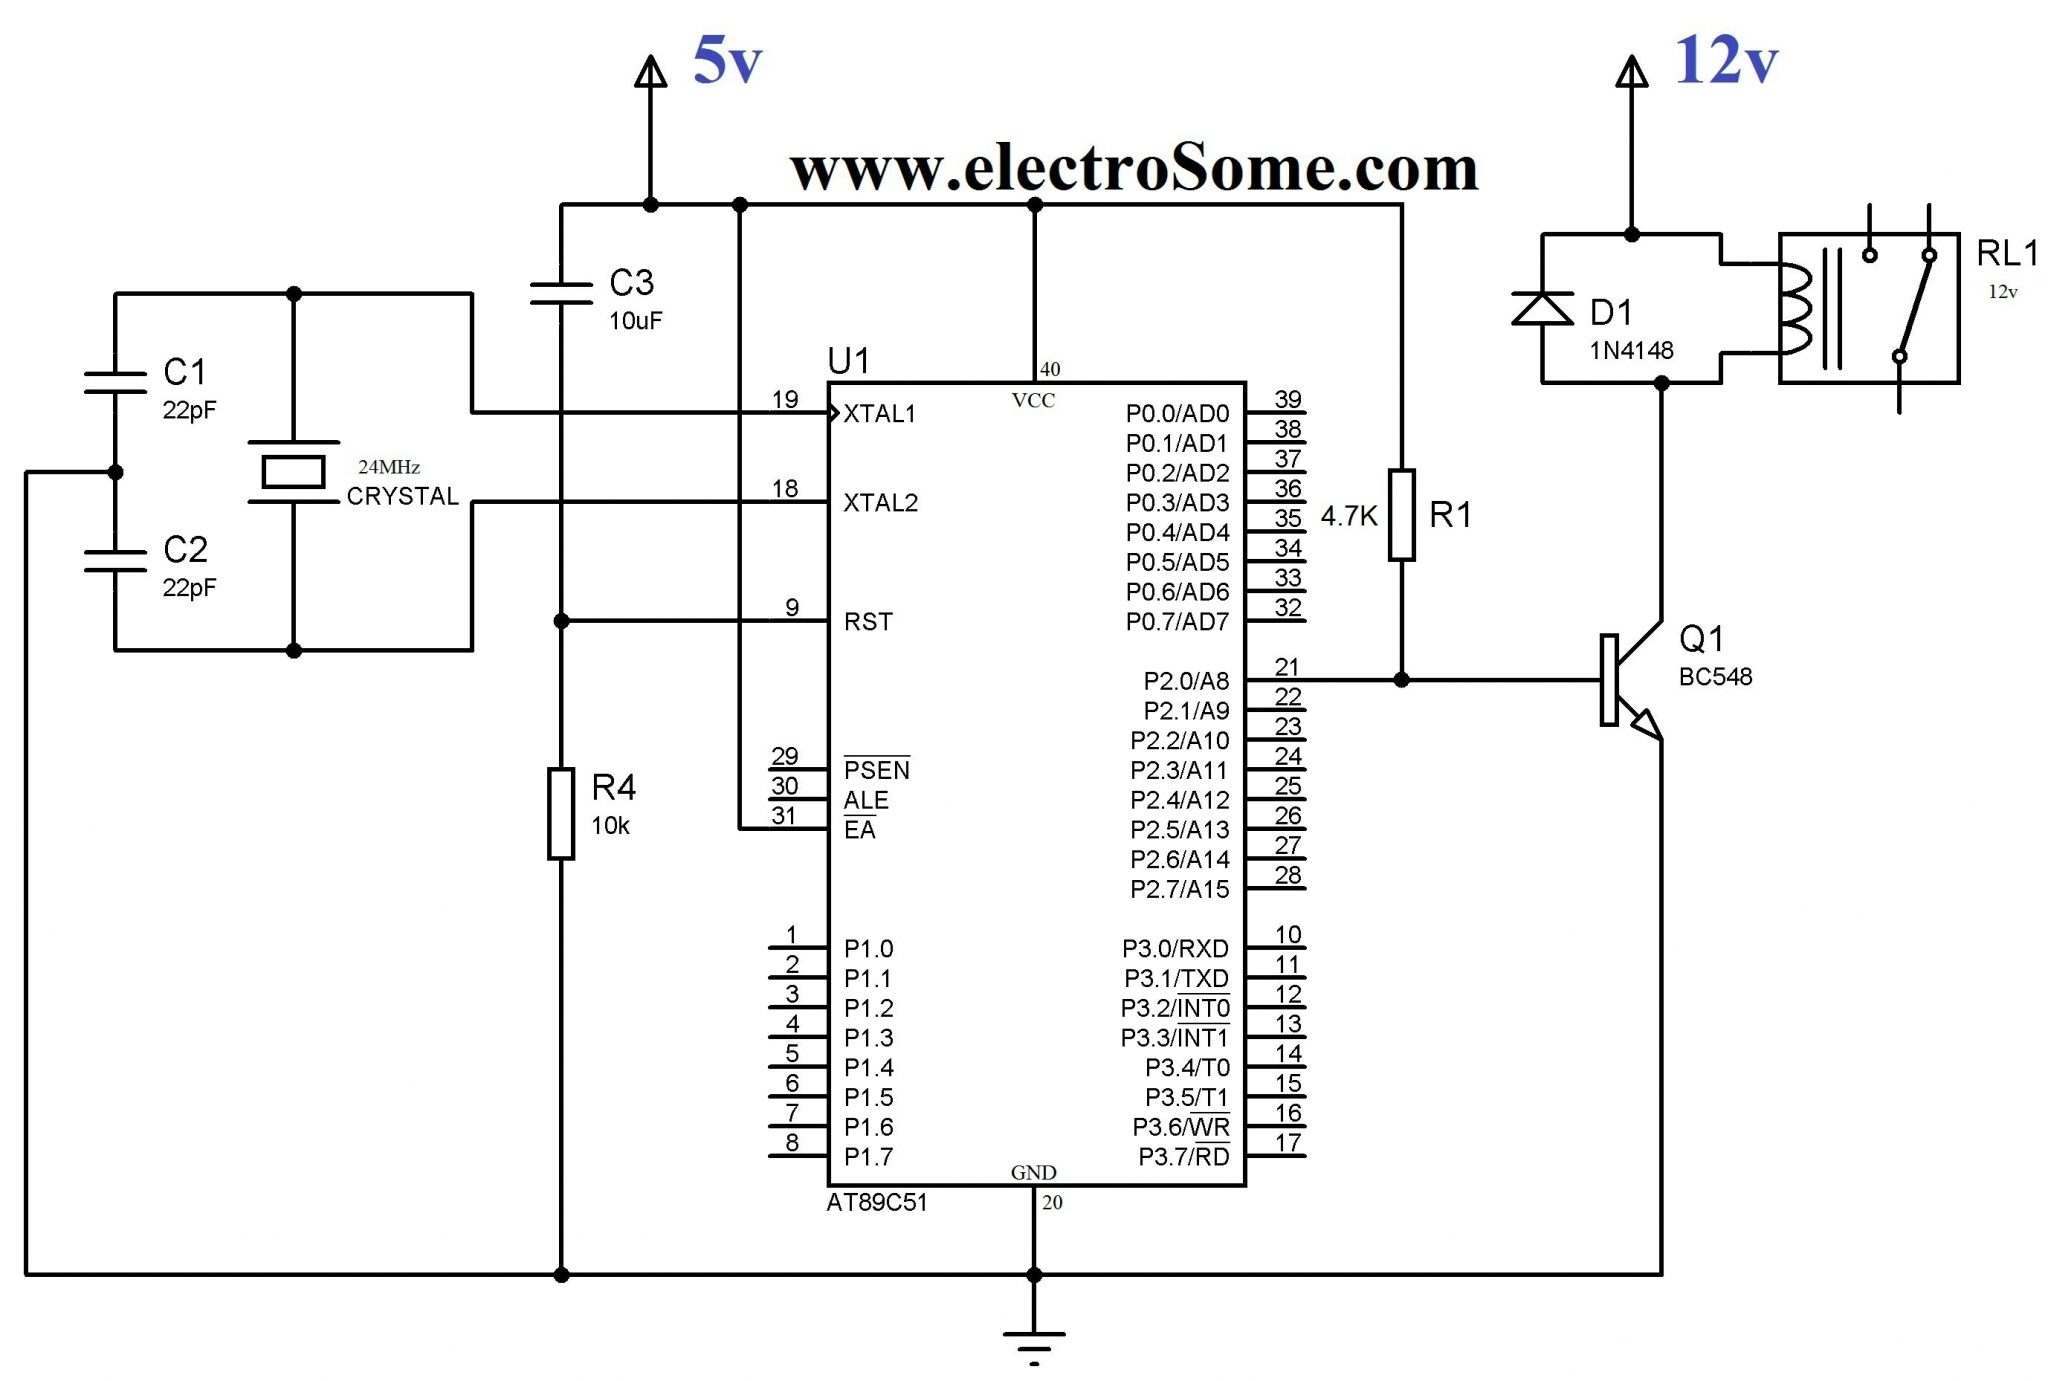 5 volt relay circuit diagram   28 wiring diagram images